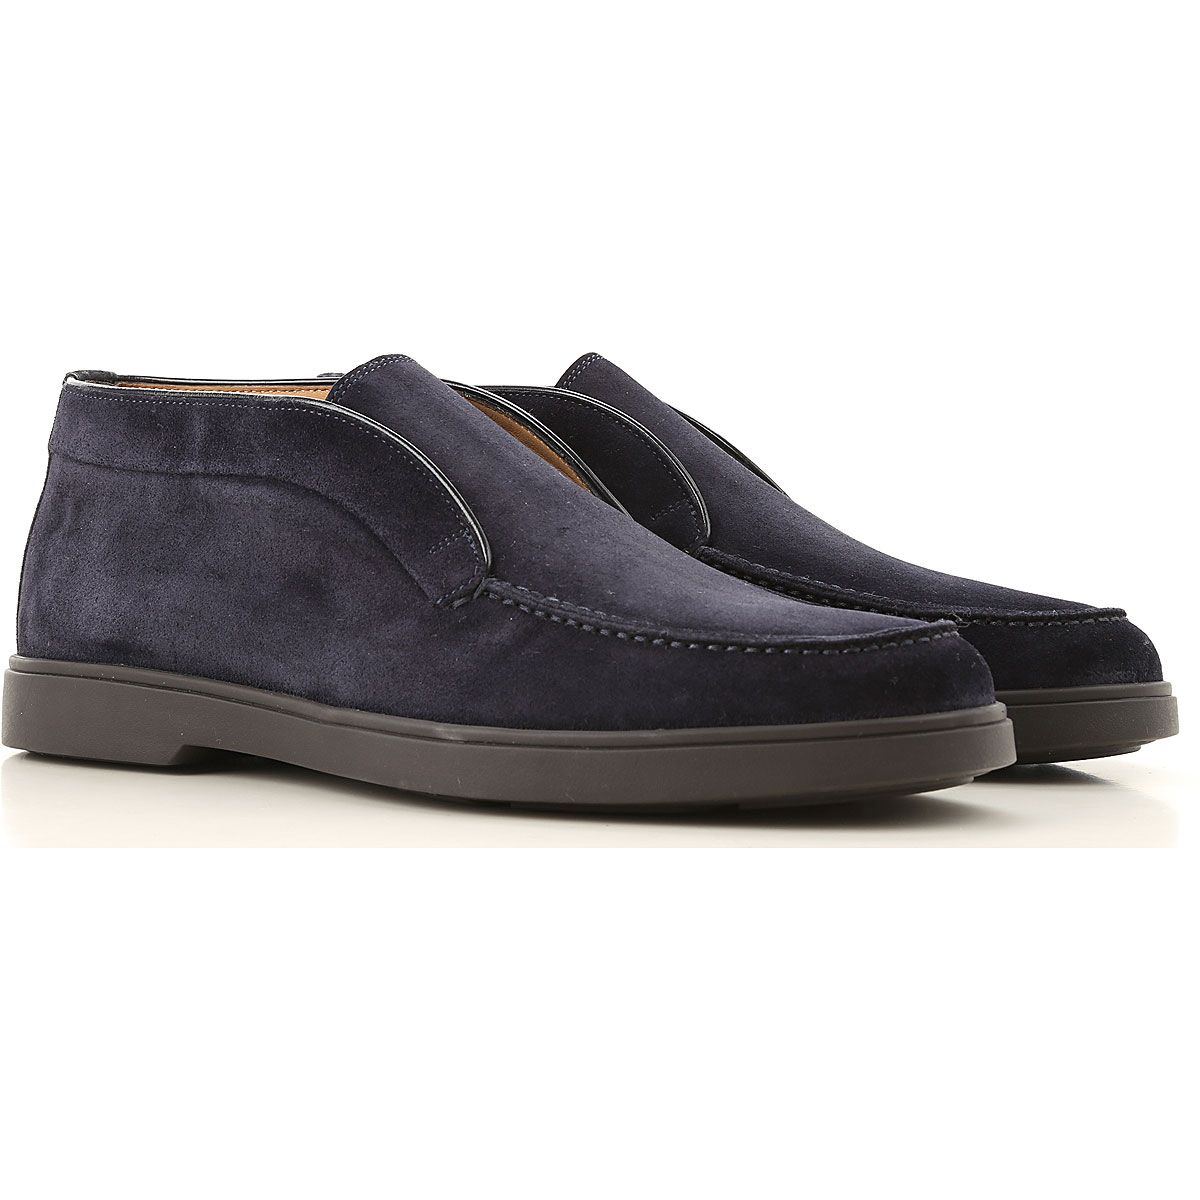 Santoni Slip on Sneakers for Men, Midnight Blue, Suede leather, 2019, 10.5 11